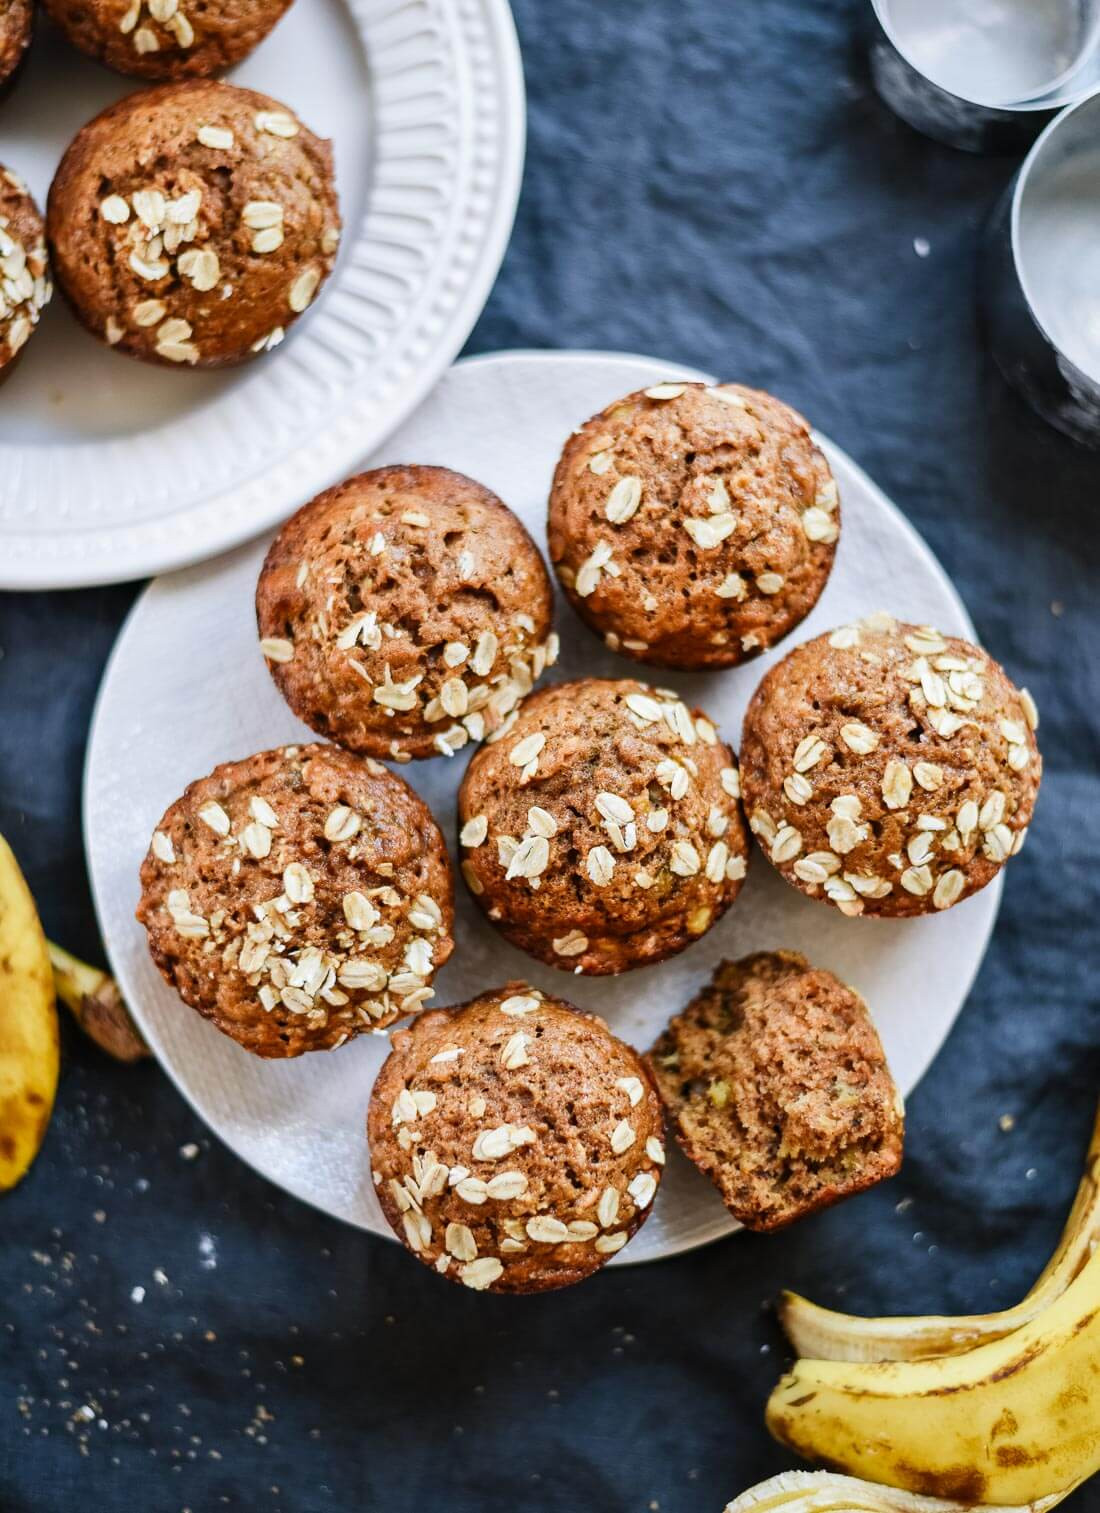 Healthy Banana Muffin Recipes  Healthy Banana Muffins Recipe Cookie and Kate